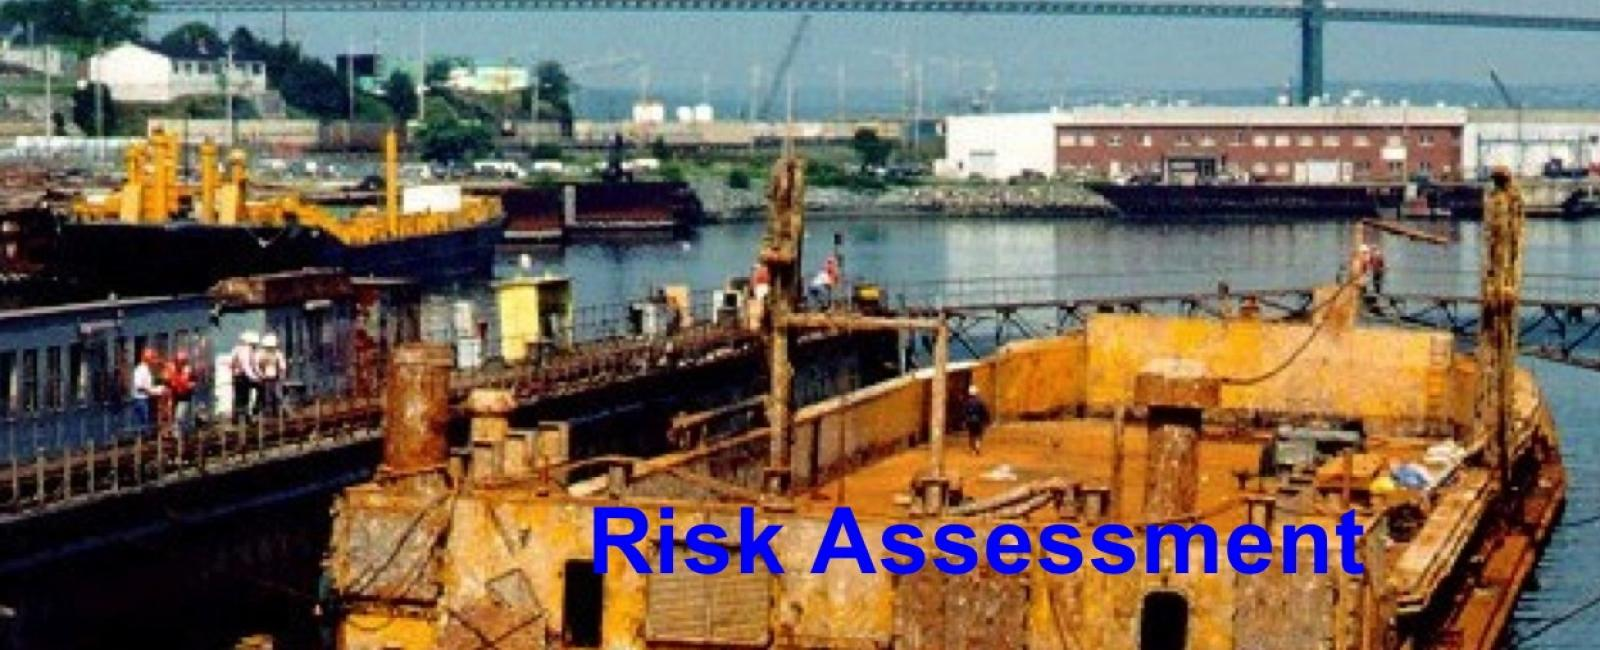 Risk Assessment Irving Whale Barge